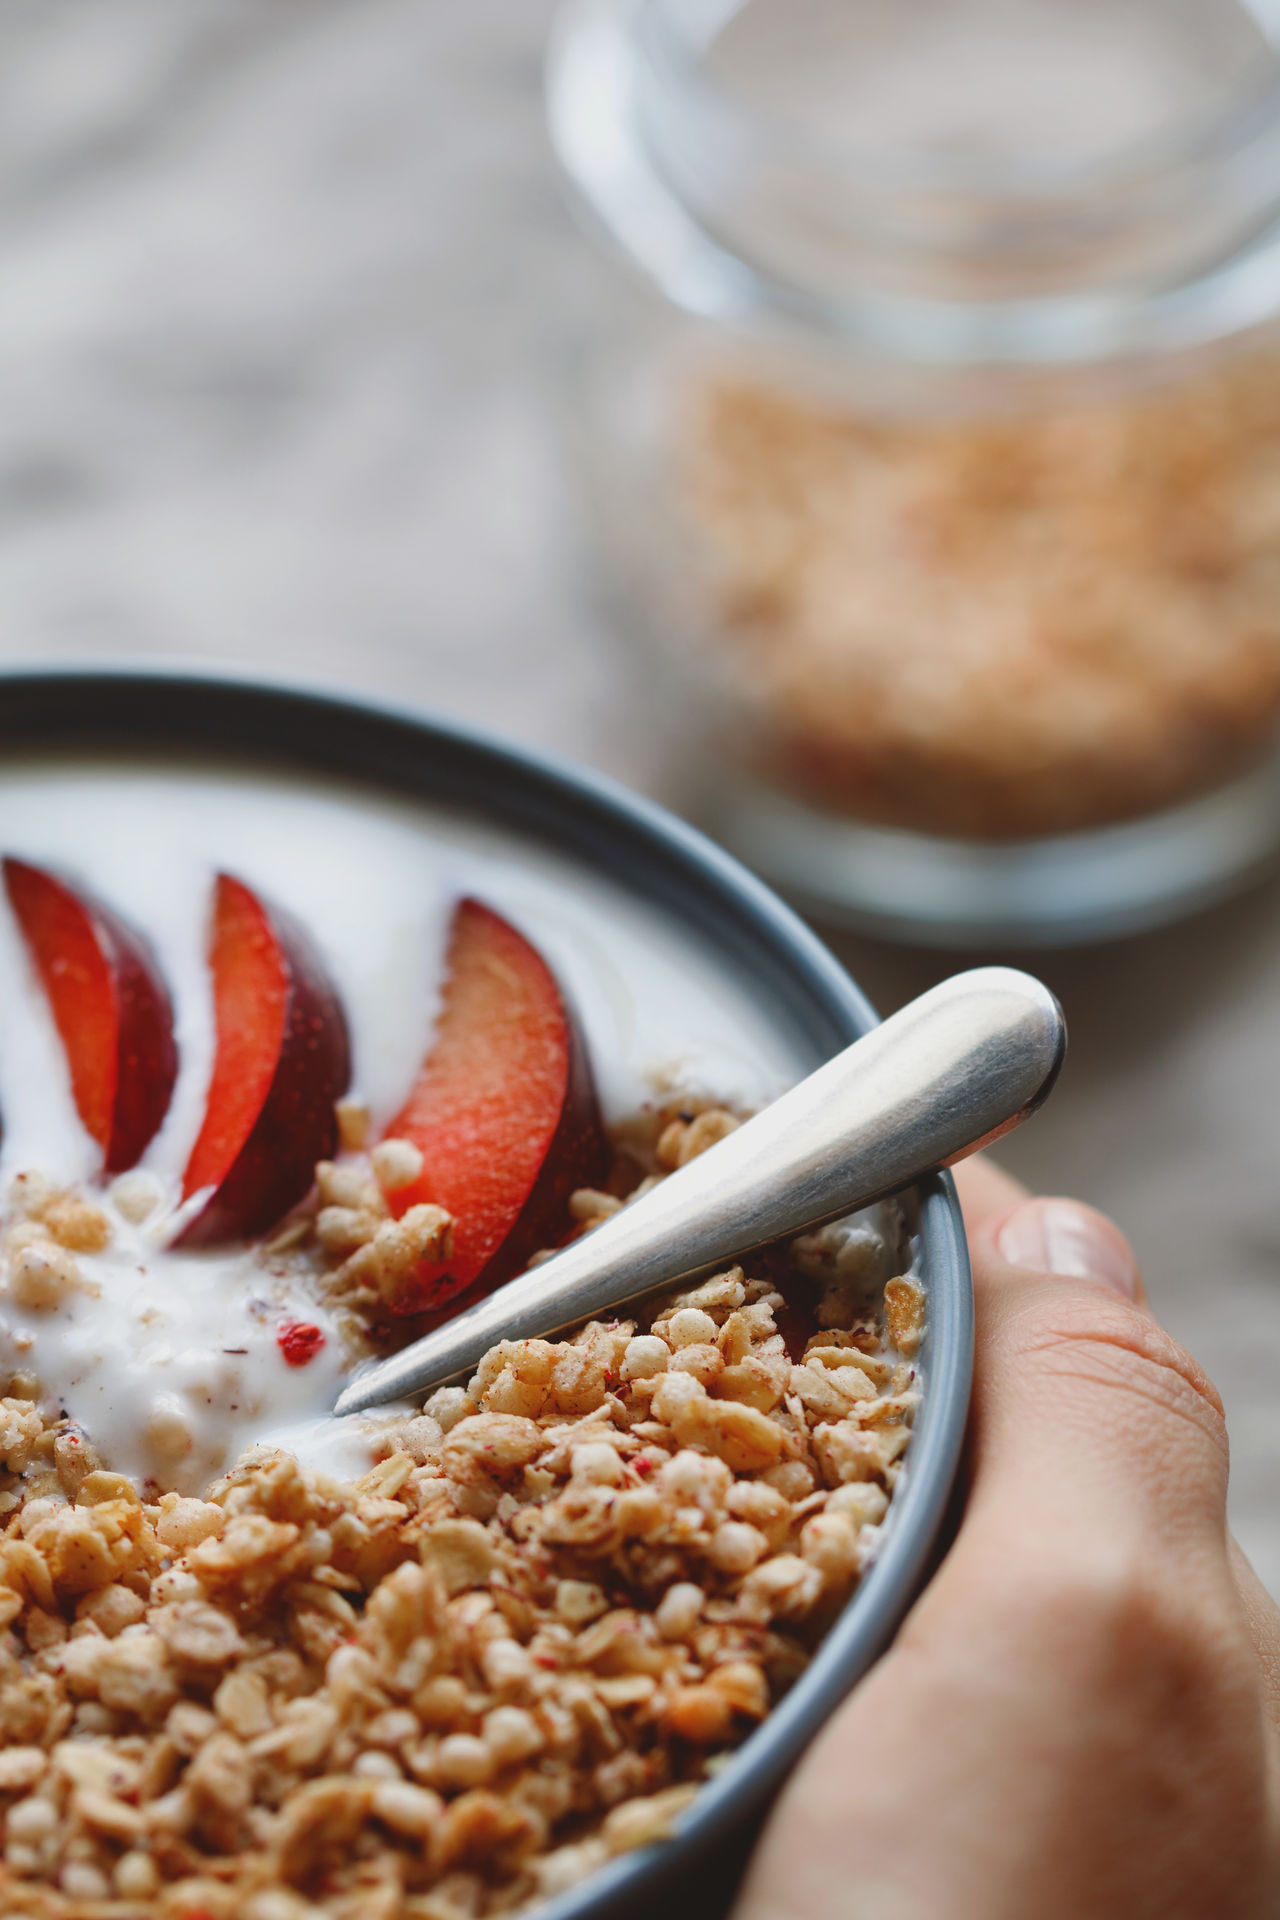 Adult Bowl Breakfast Breakfast Cereal Close-up Food Food And Drink Freshness Healthy Eating Healthy Food Healthy Lifestyle Human Body Part Human Hand Milk Morning One Person People Plum Ready-to-eat Selective Focus Table